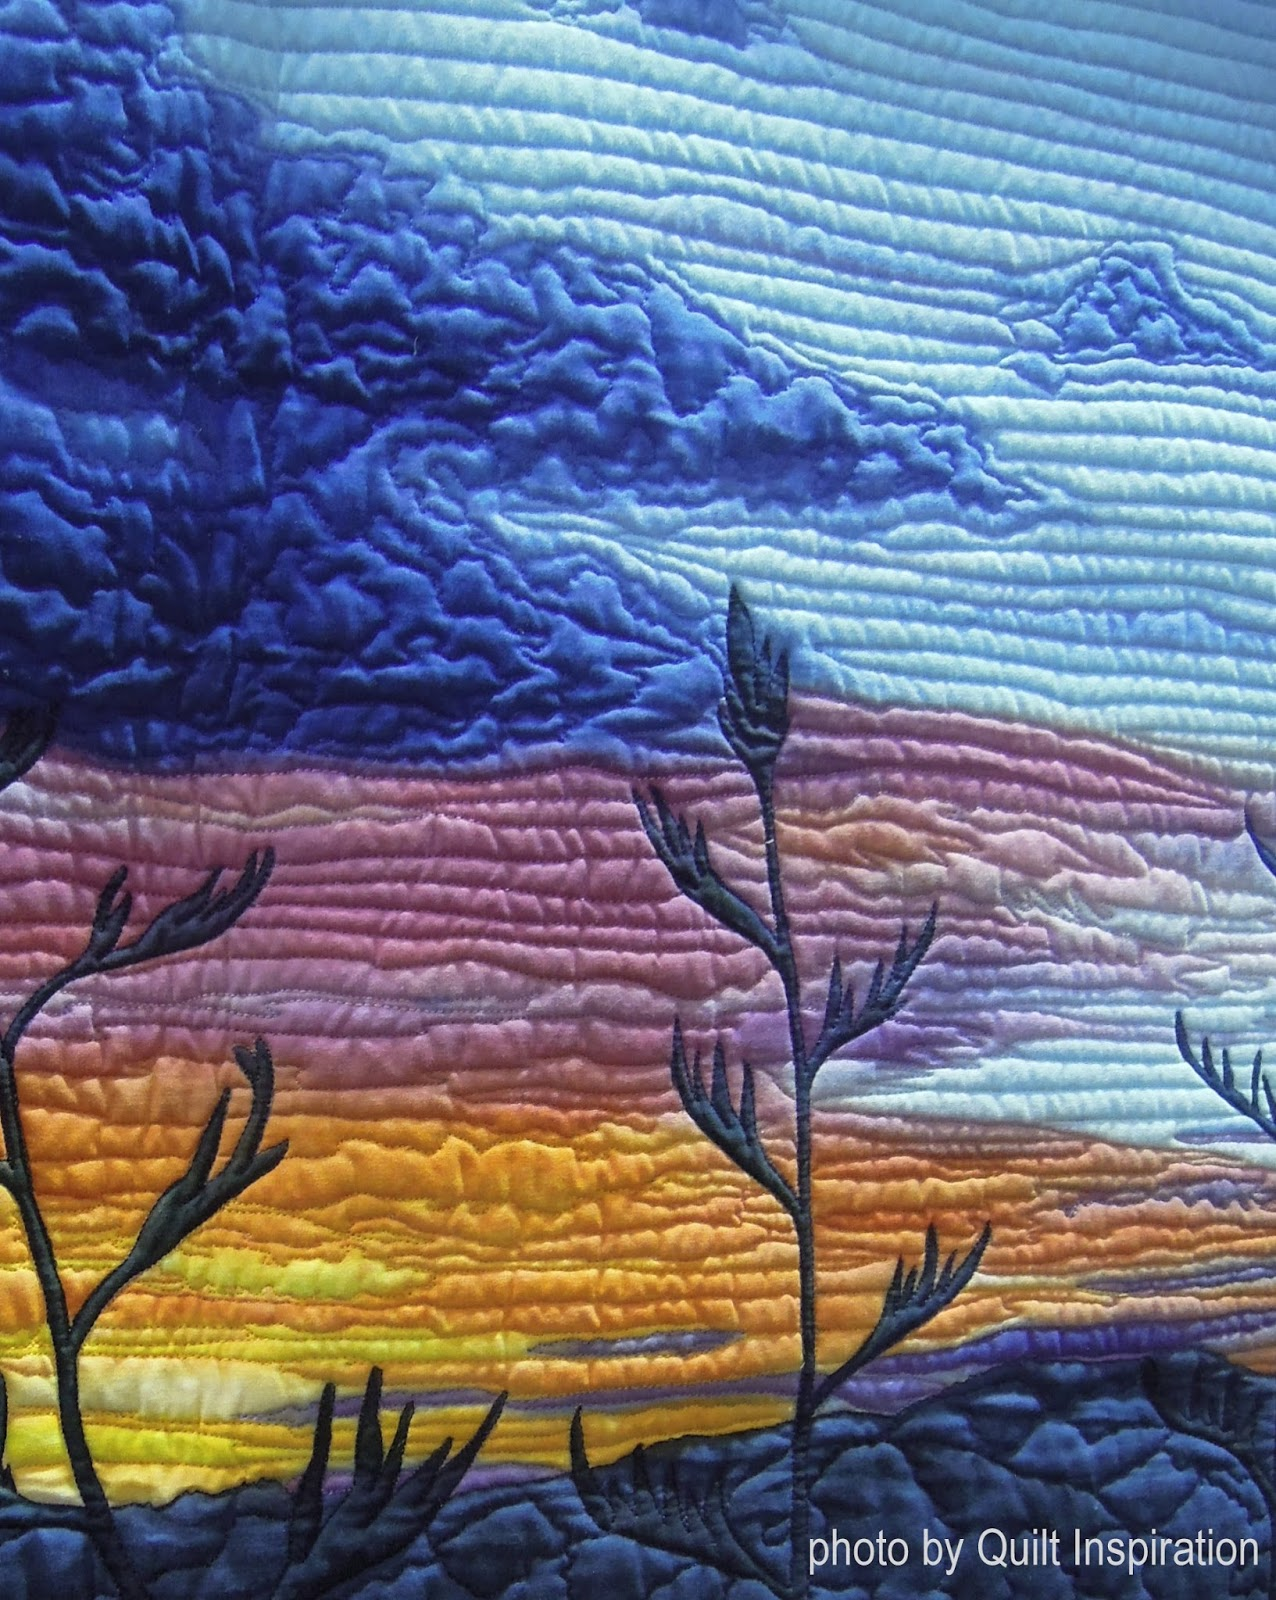 Quilt Inspiration: Quilts of the World part 4: New Zealand